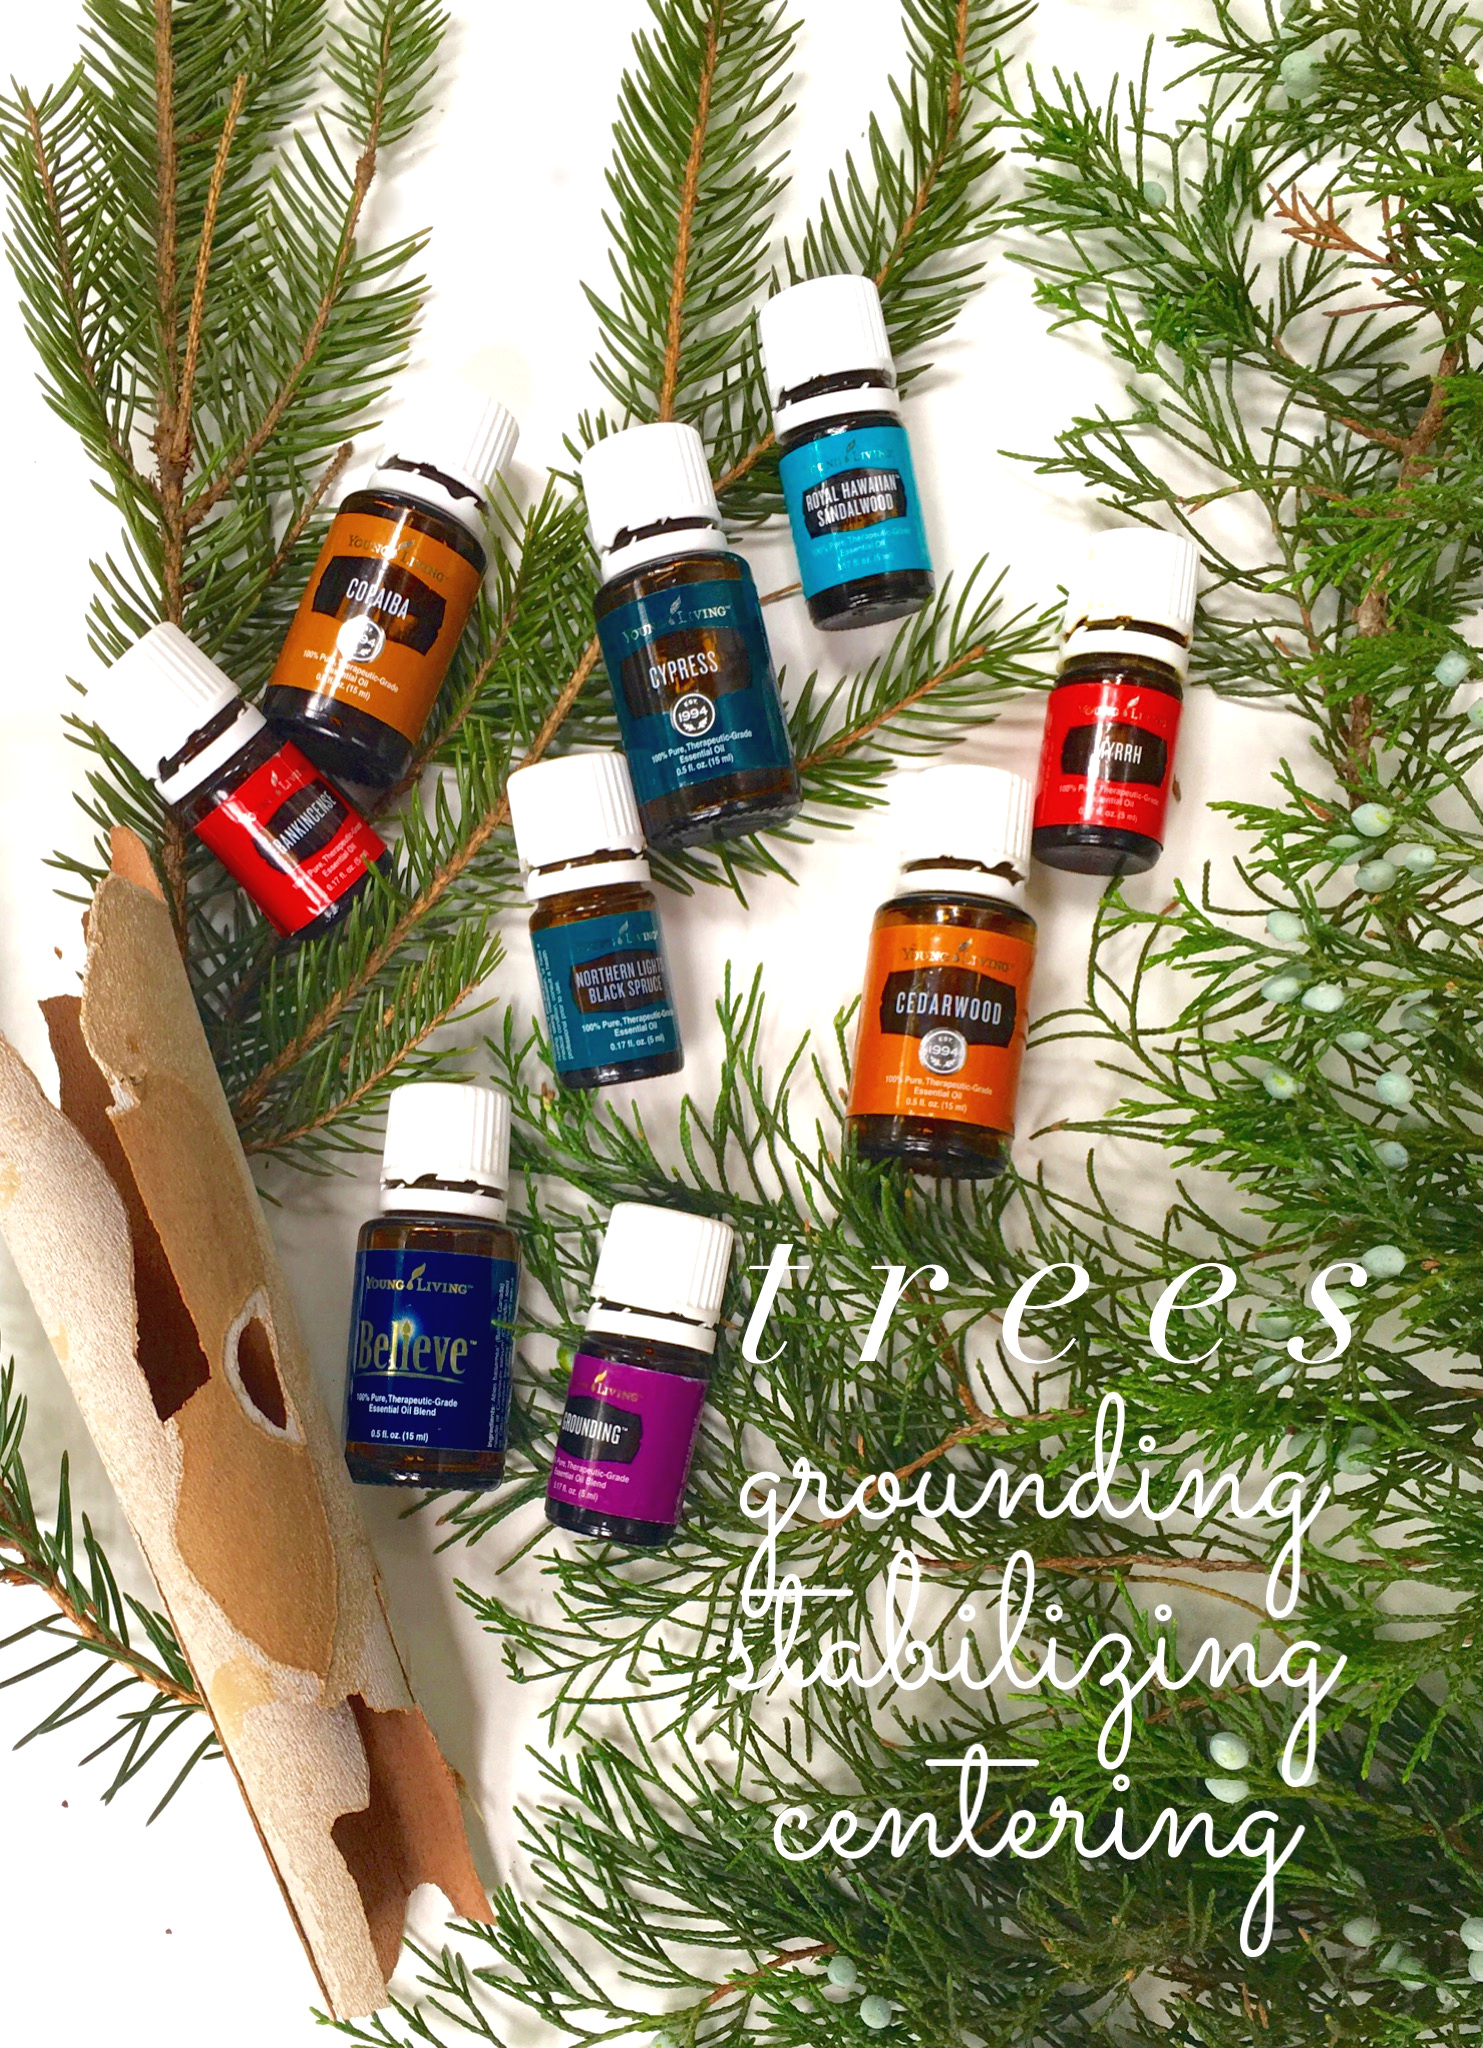 Frankincense, Copaiba, Cypress, Royal Hawaiian Sandalwood, Myrrh, Northern Lights Black Spruce, and Cedarwood are all wood oils, and Believe and Grounding are blends of several wood oils.